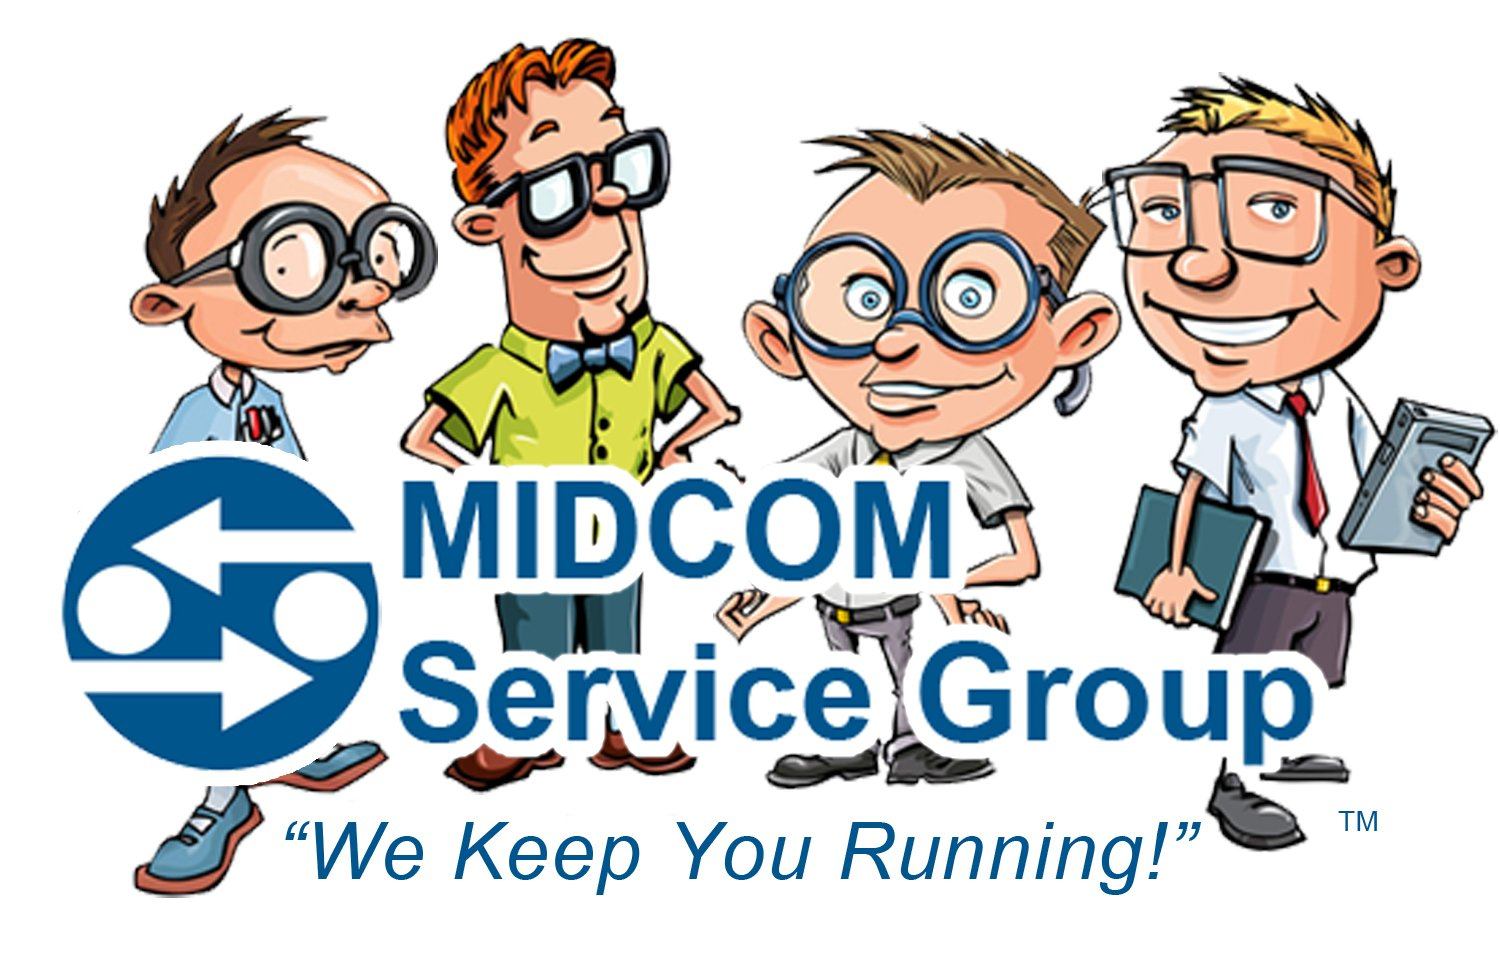 MIDCOM Service Group